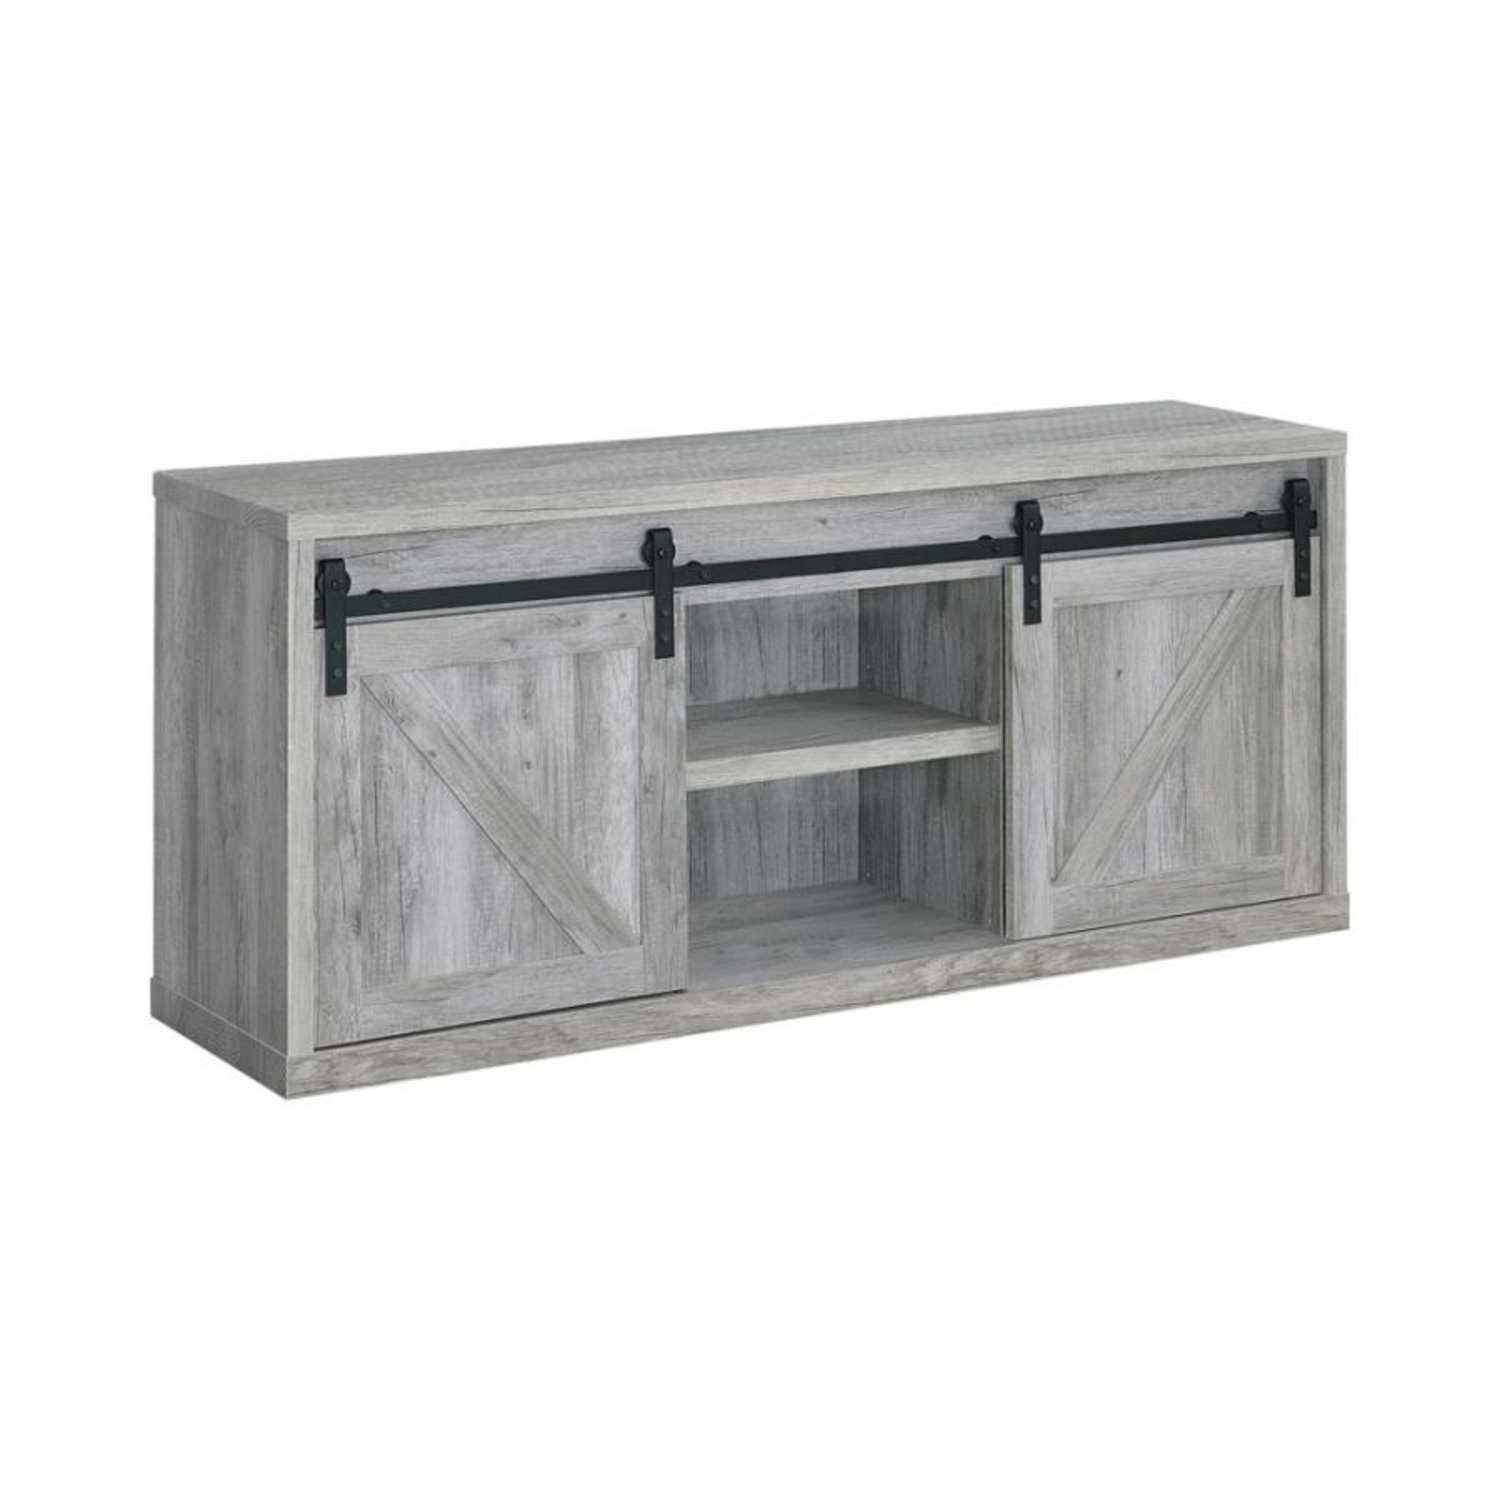 59-Inch TV Console In Grey Driftwood Finish - image-0